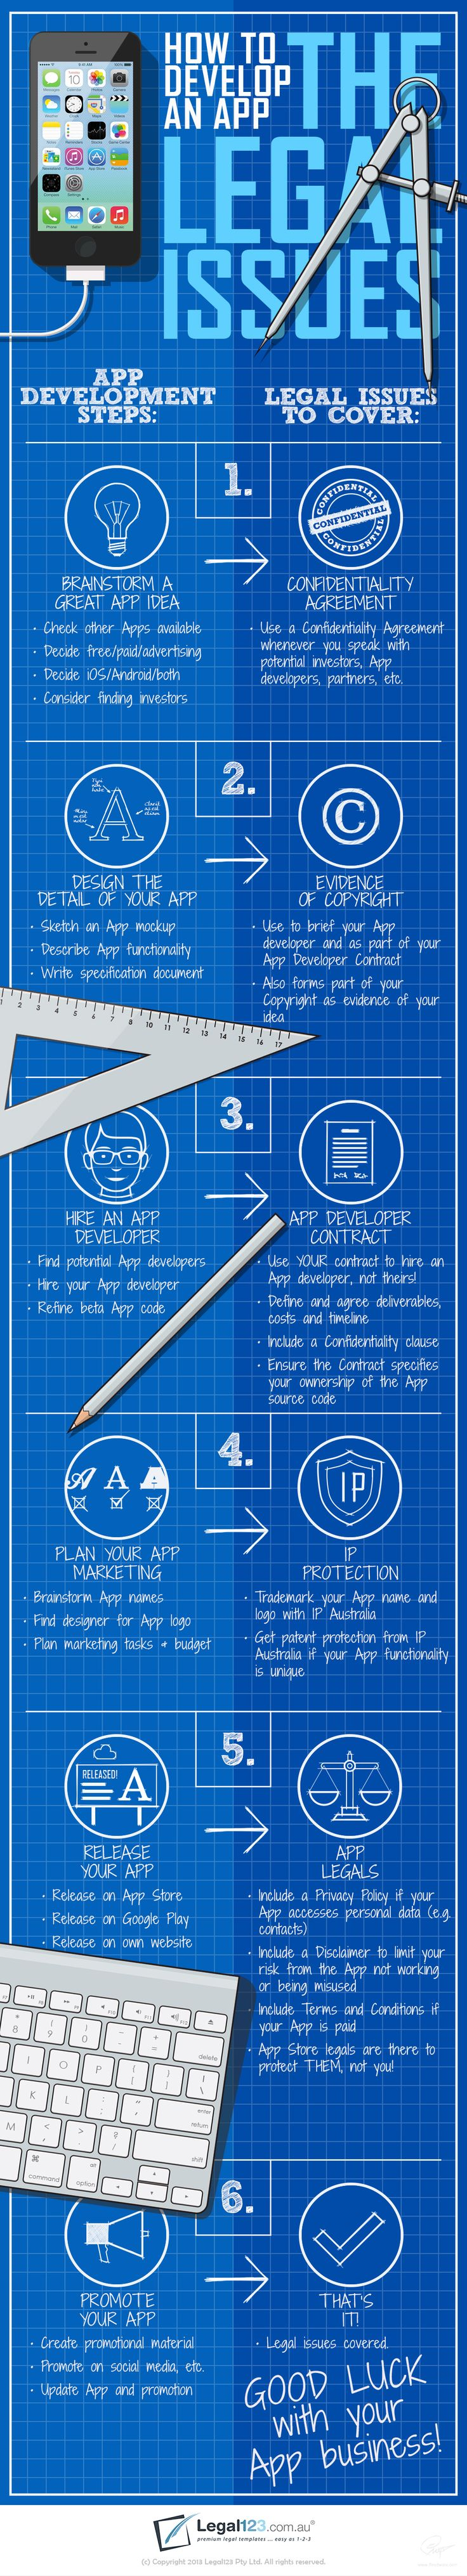 Howto develop an app. The legal issues. #Infographic